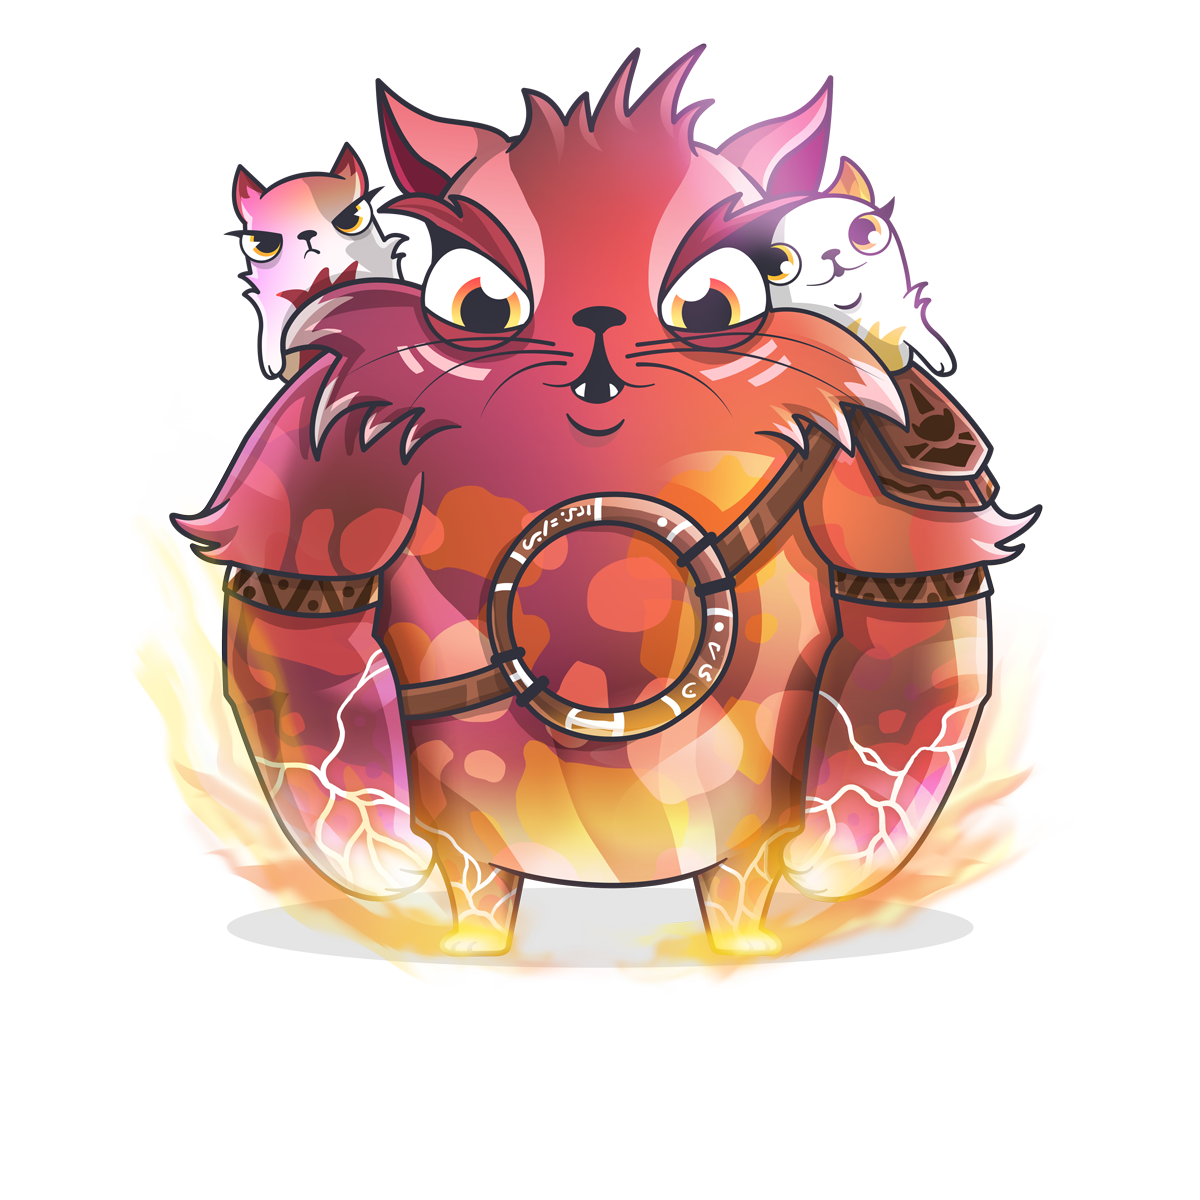 cryptokitty #1818332